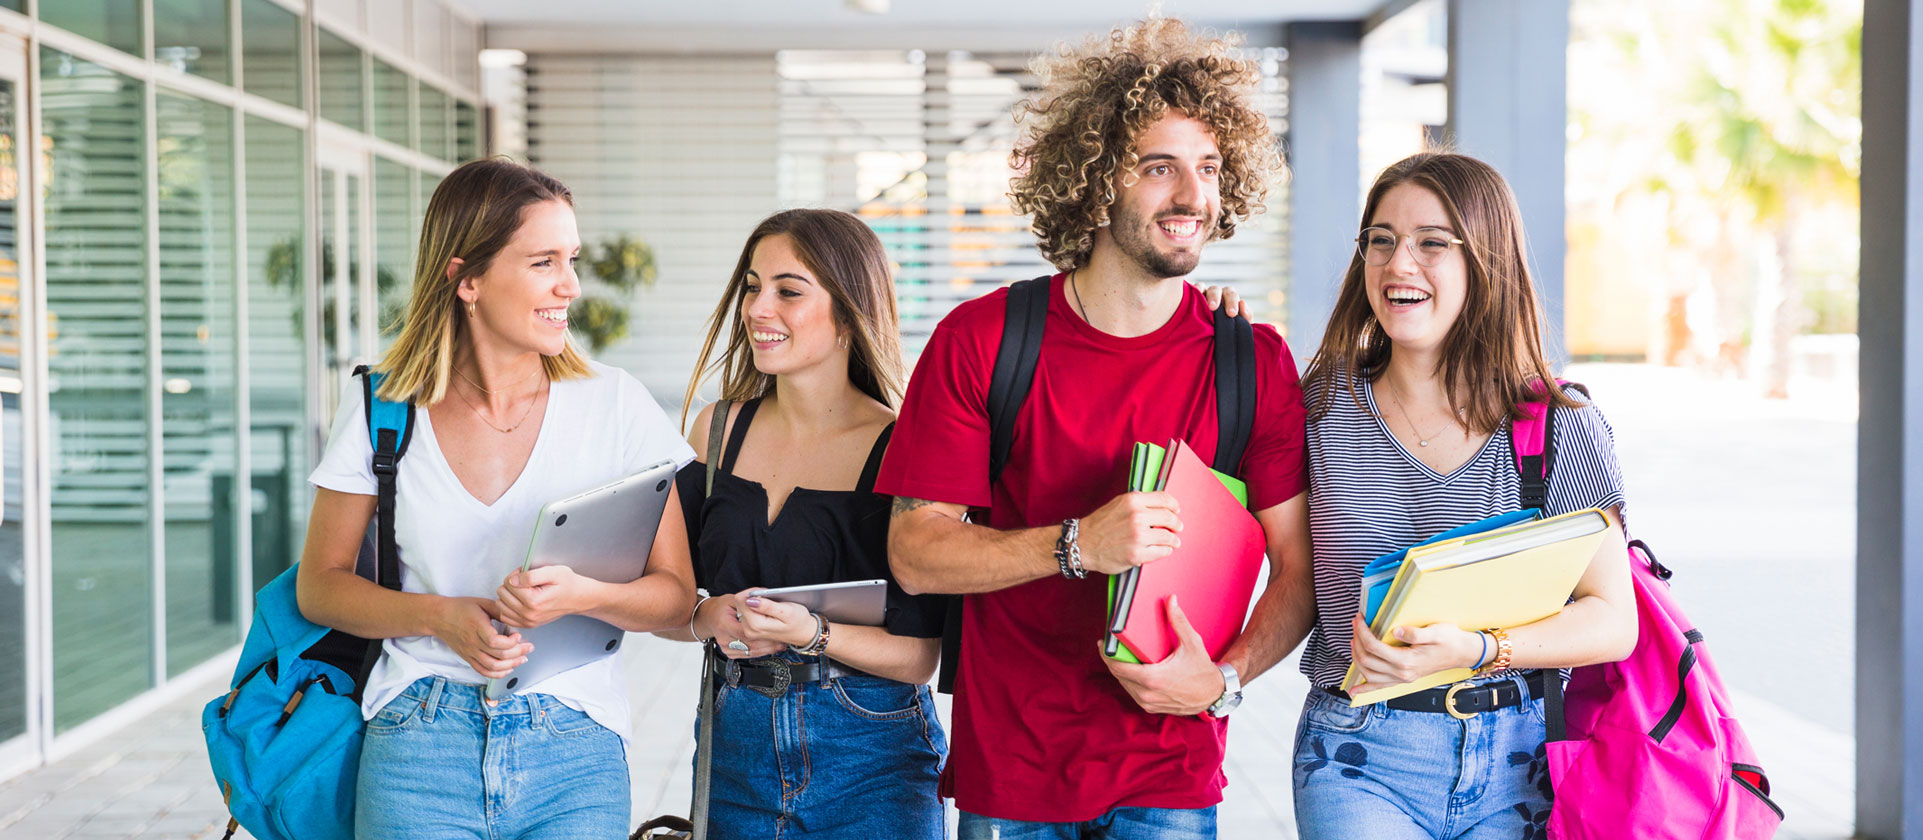 Contact us | Learn English - WiltShire Academy